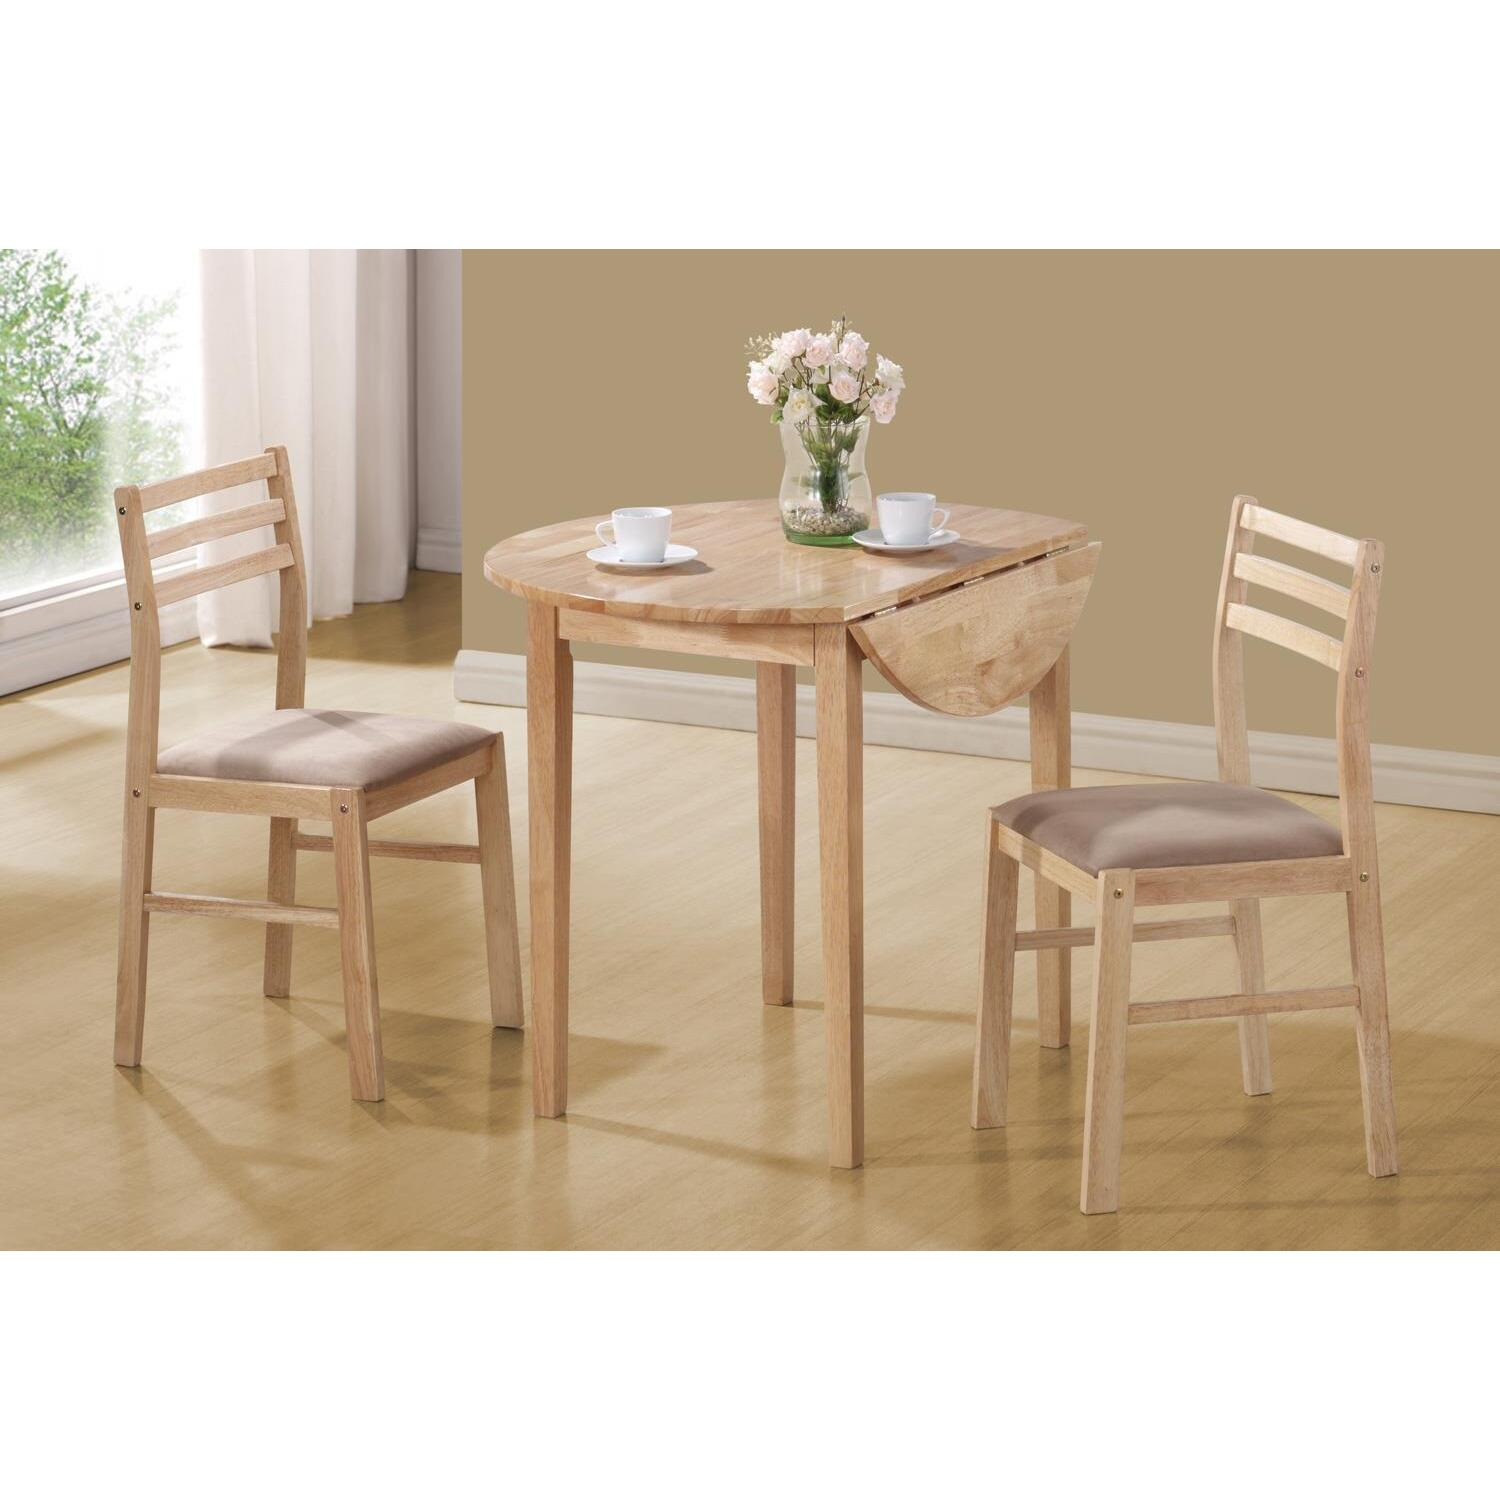 3 Piece Dining Set From 400 33 To 413 99 Ojcommerce